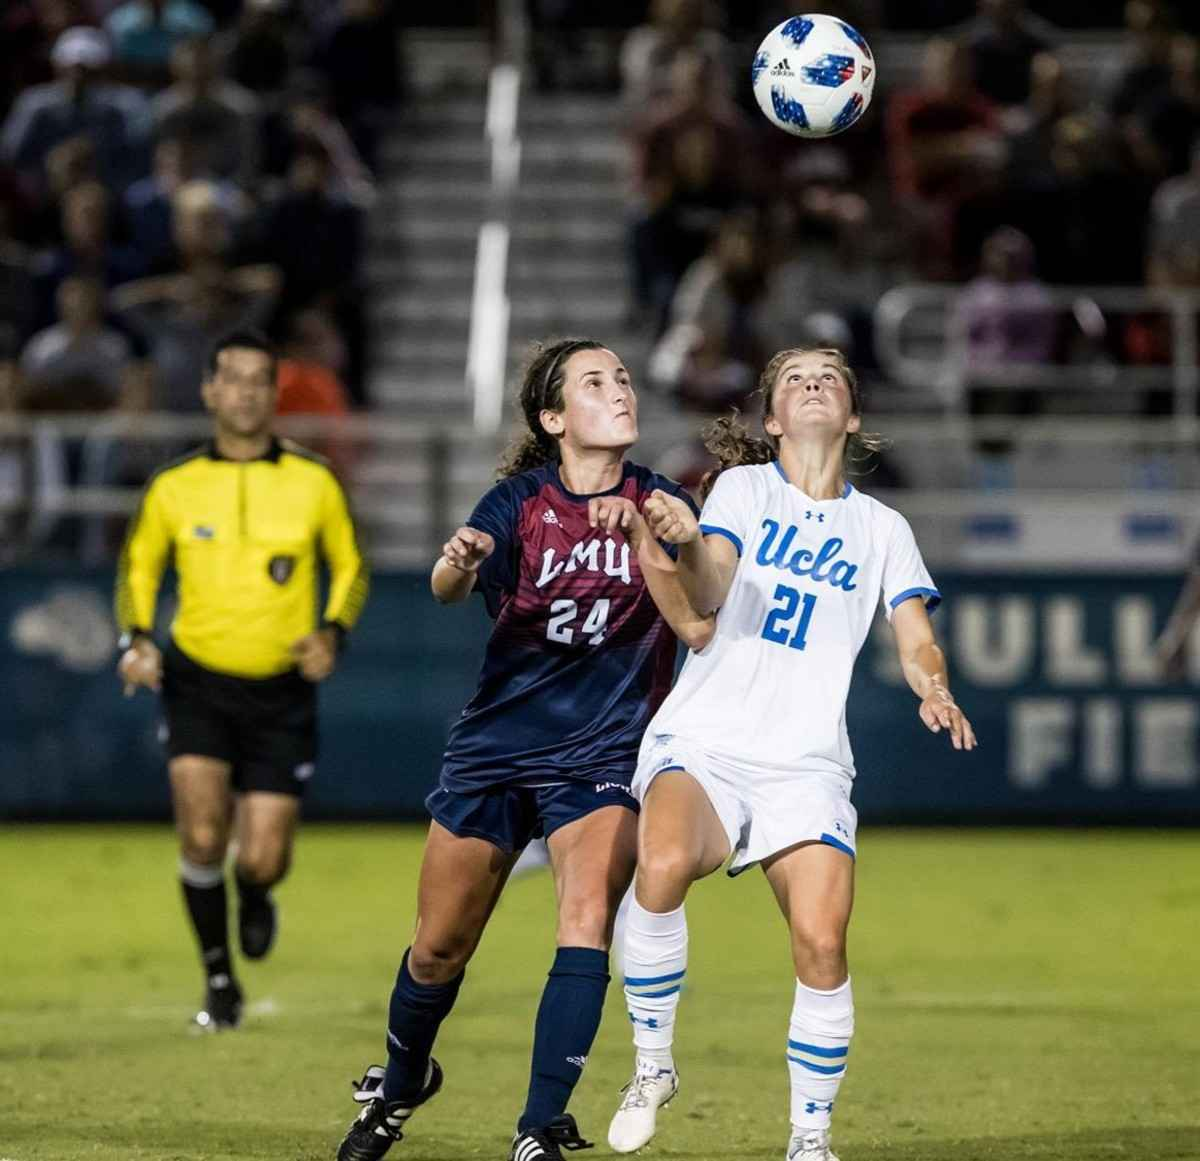 At LMU: VB now 10-1; soccer team plays UCLA tough before losing - Angelus News -...